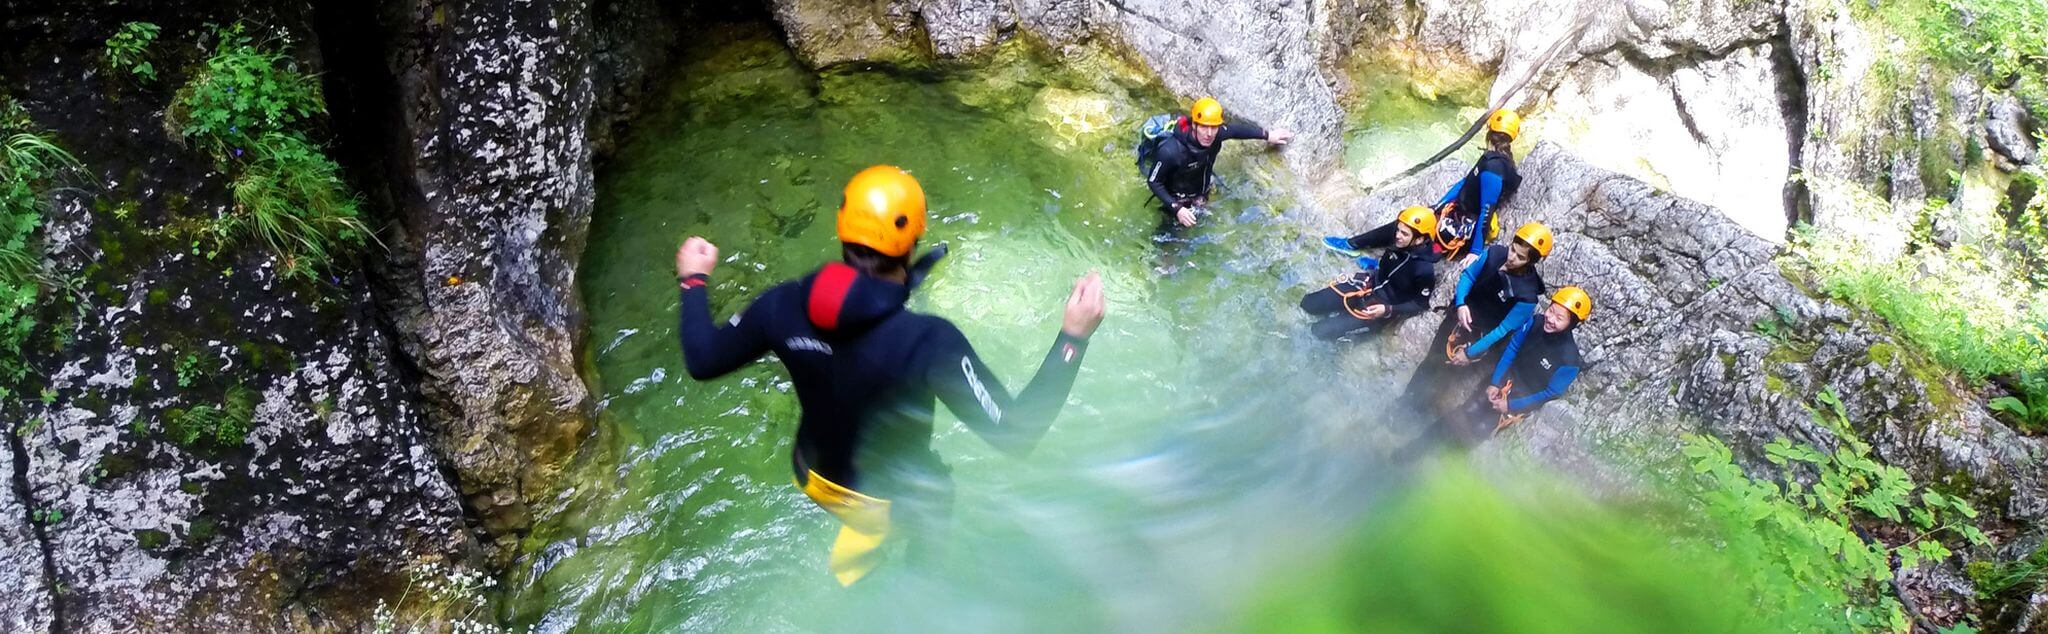 Canyoning in Utrillas